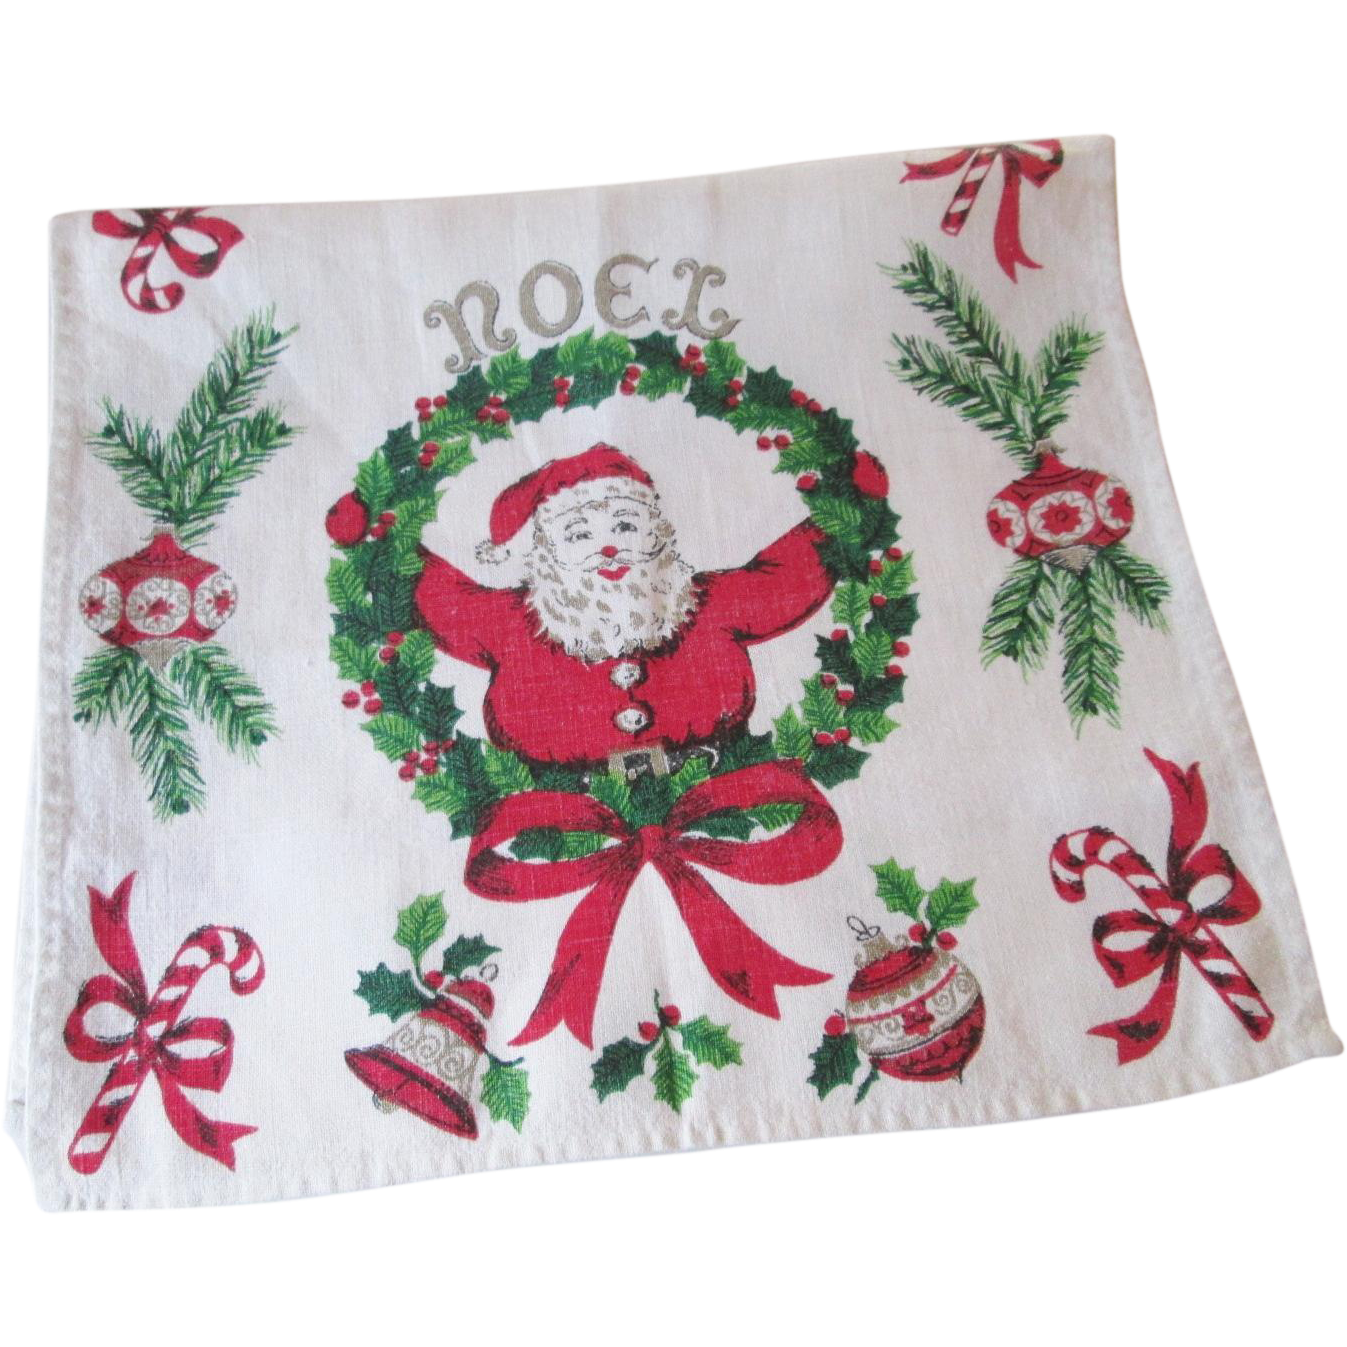 Lot Of 5 Vintage Christmas Decorations Kitsch Santa Claus: Kitsch Christmas Towel Vintage 1950s Santa Claus Holiday